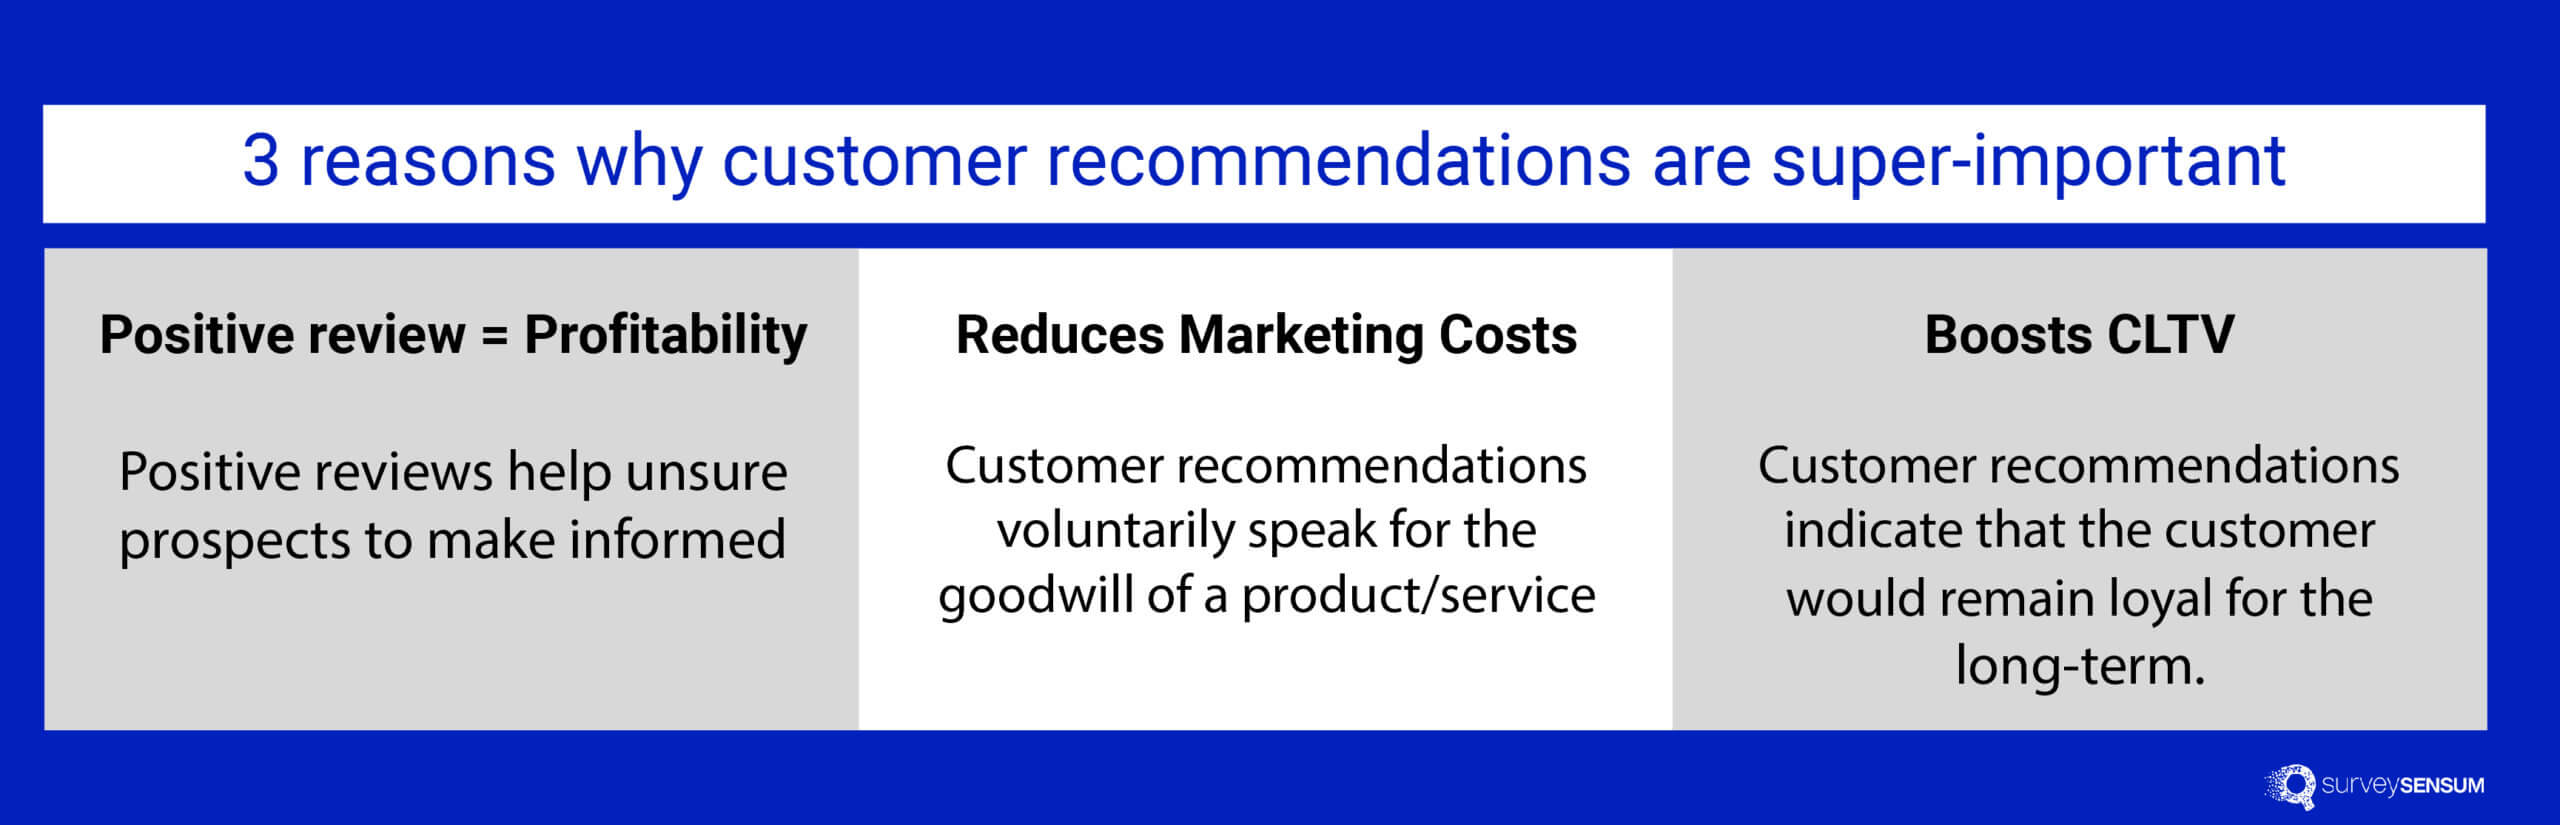 Importance of customer recommendation